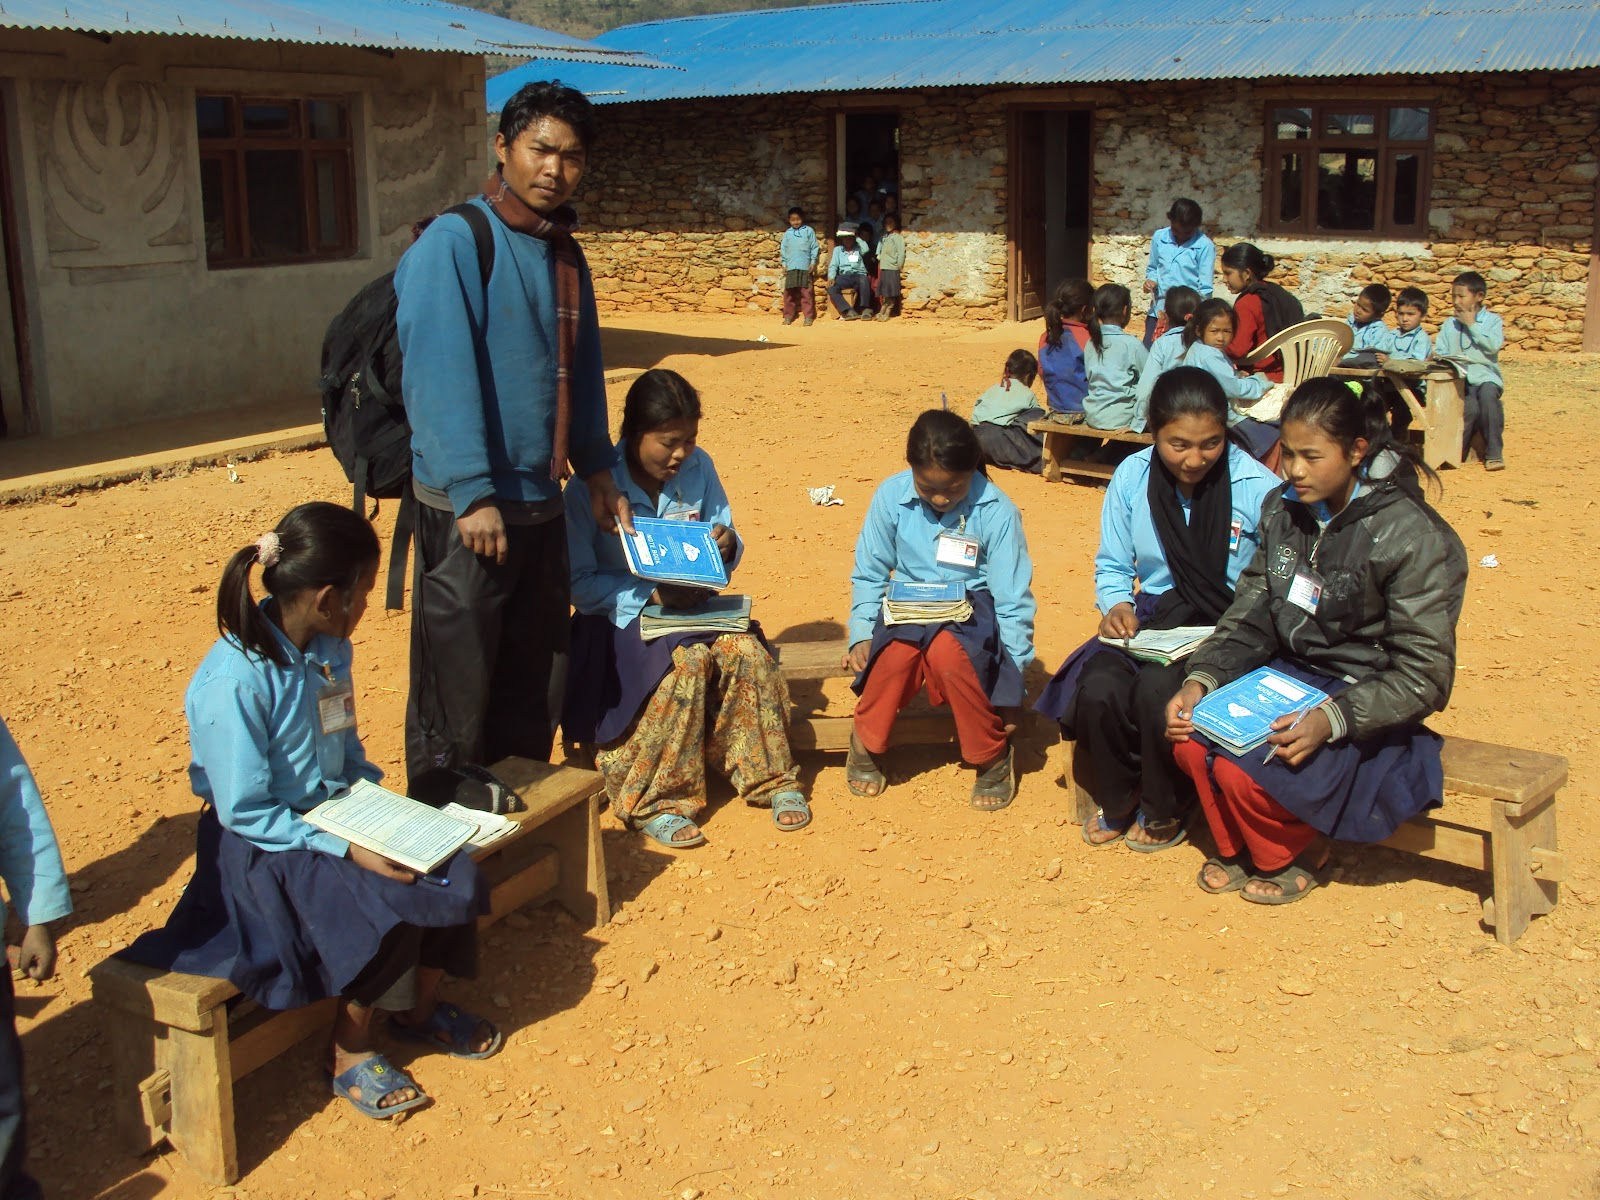 small school sponsored in rural areas of Nepal